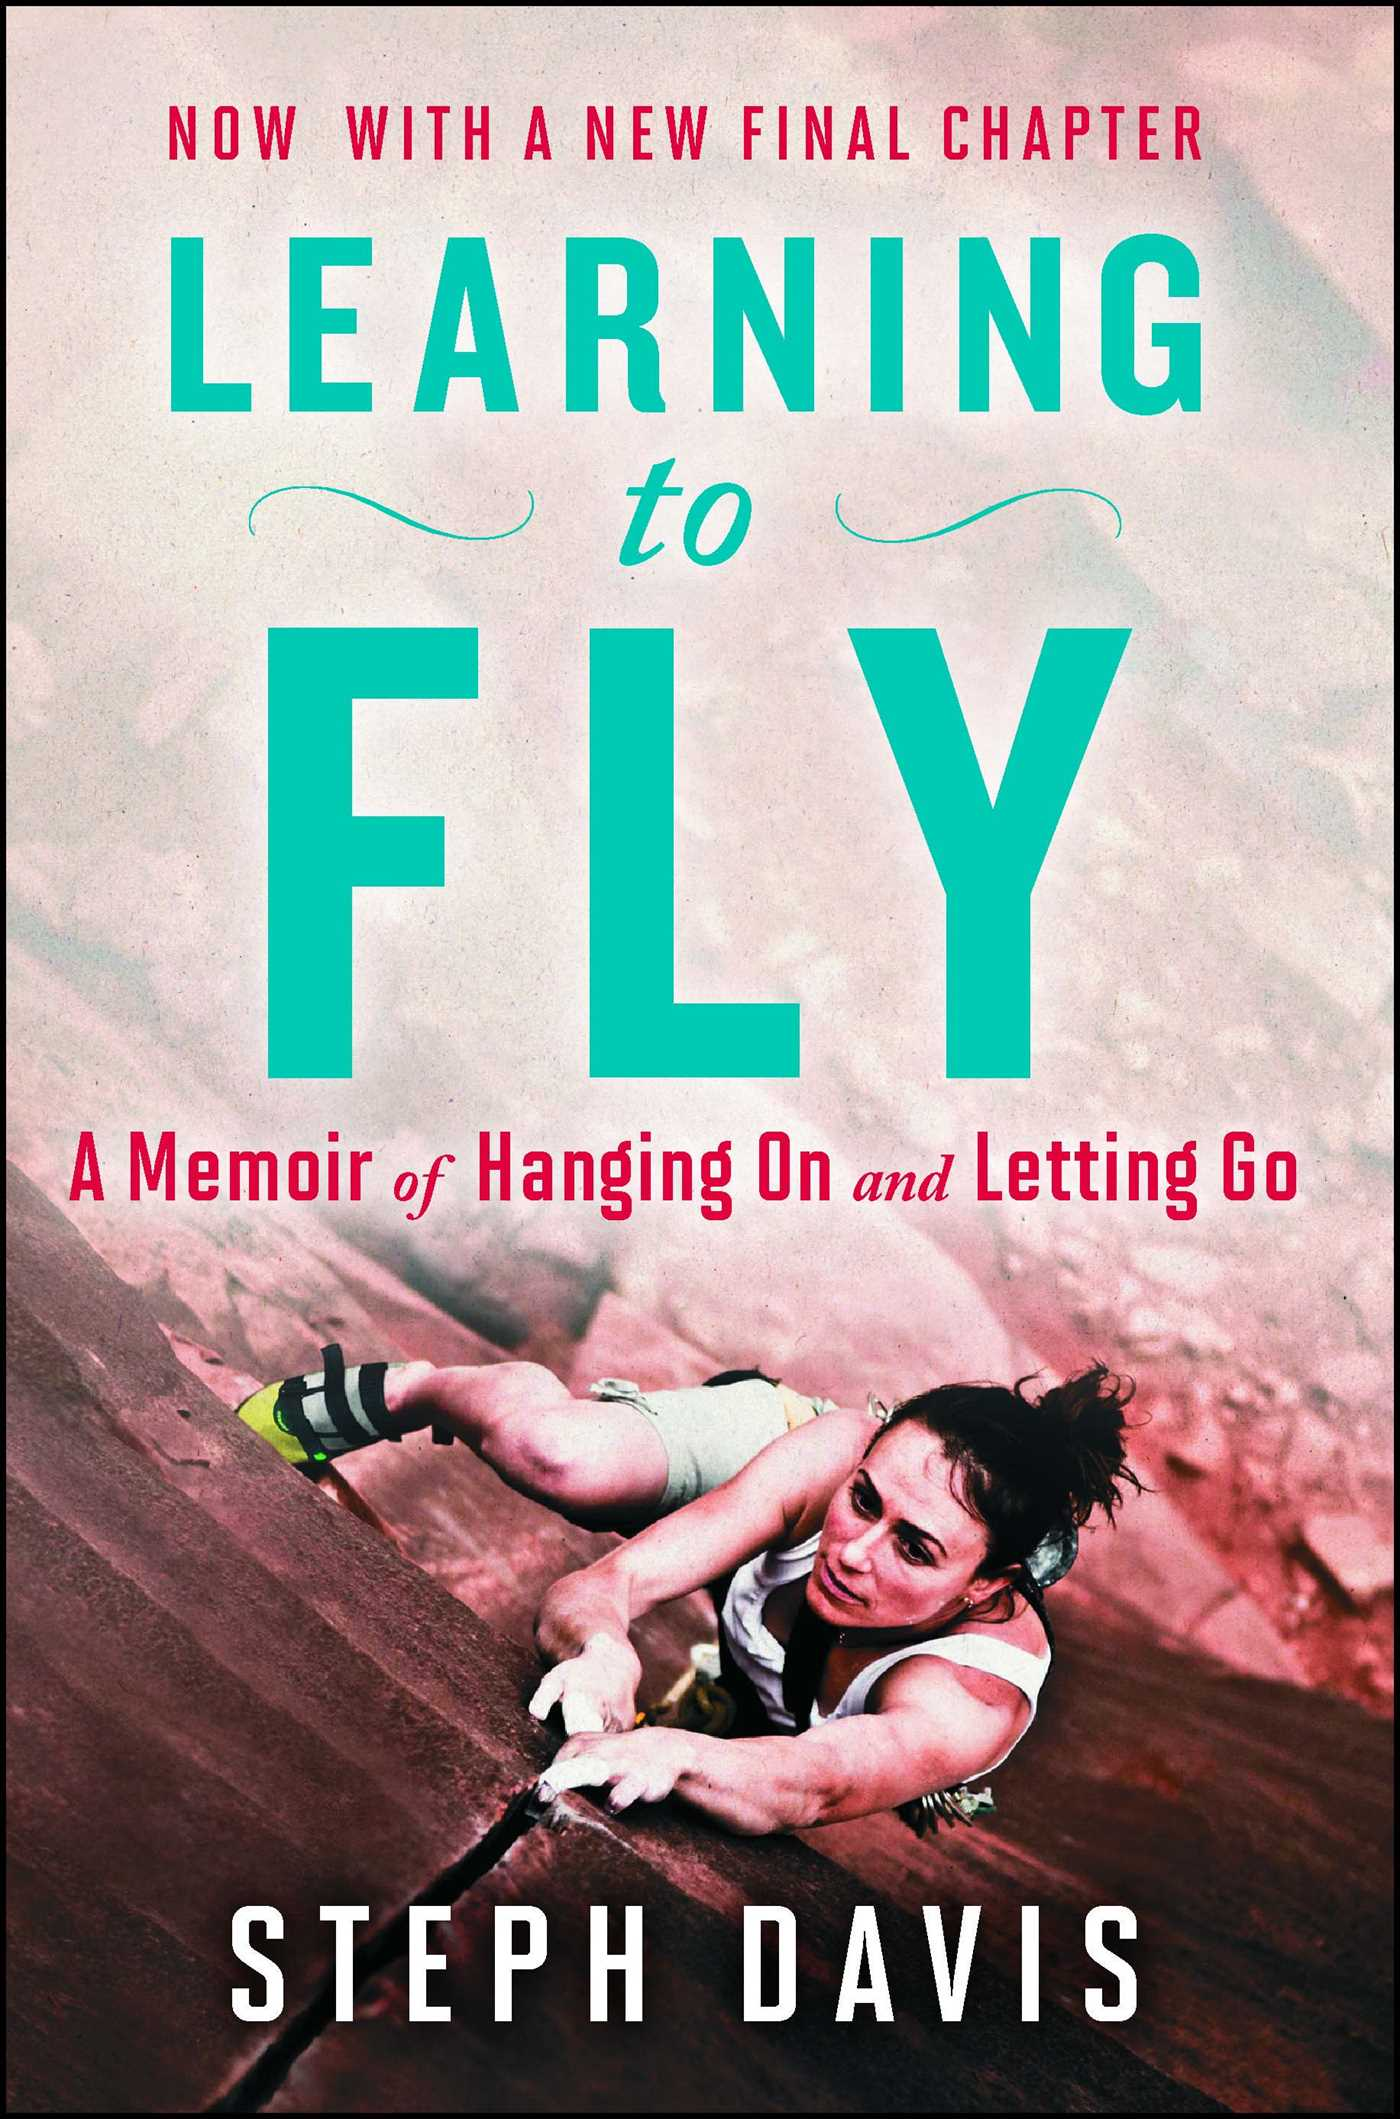 Learning-to-fly-9781451652079_hr